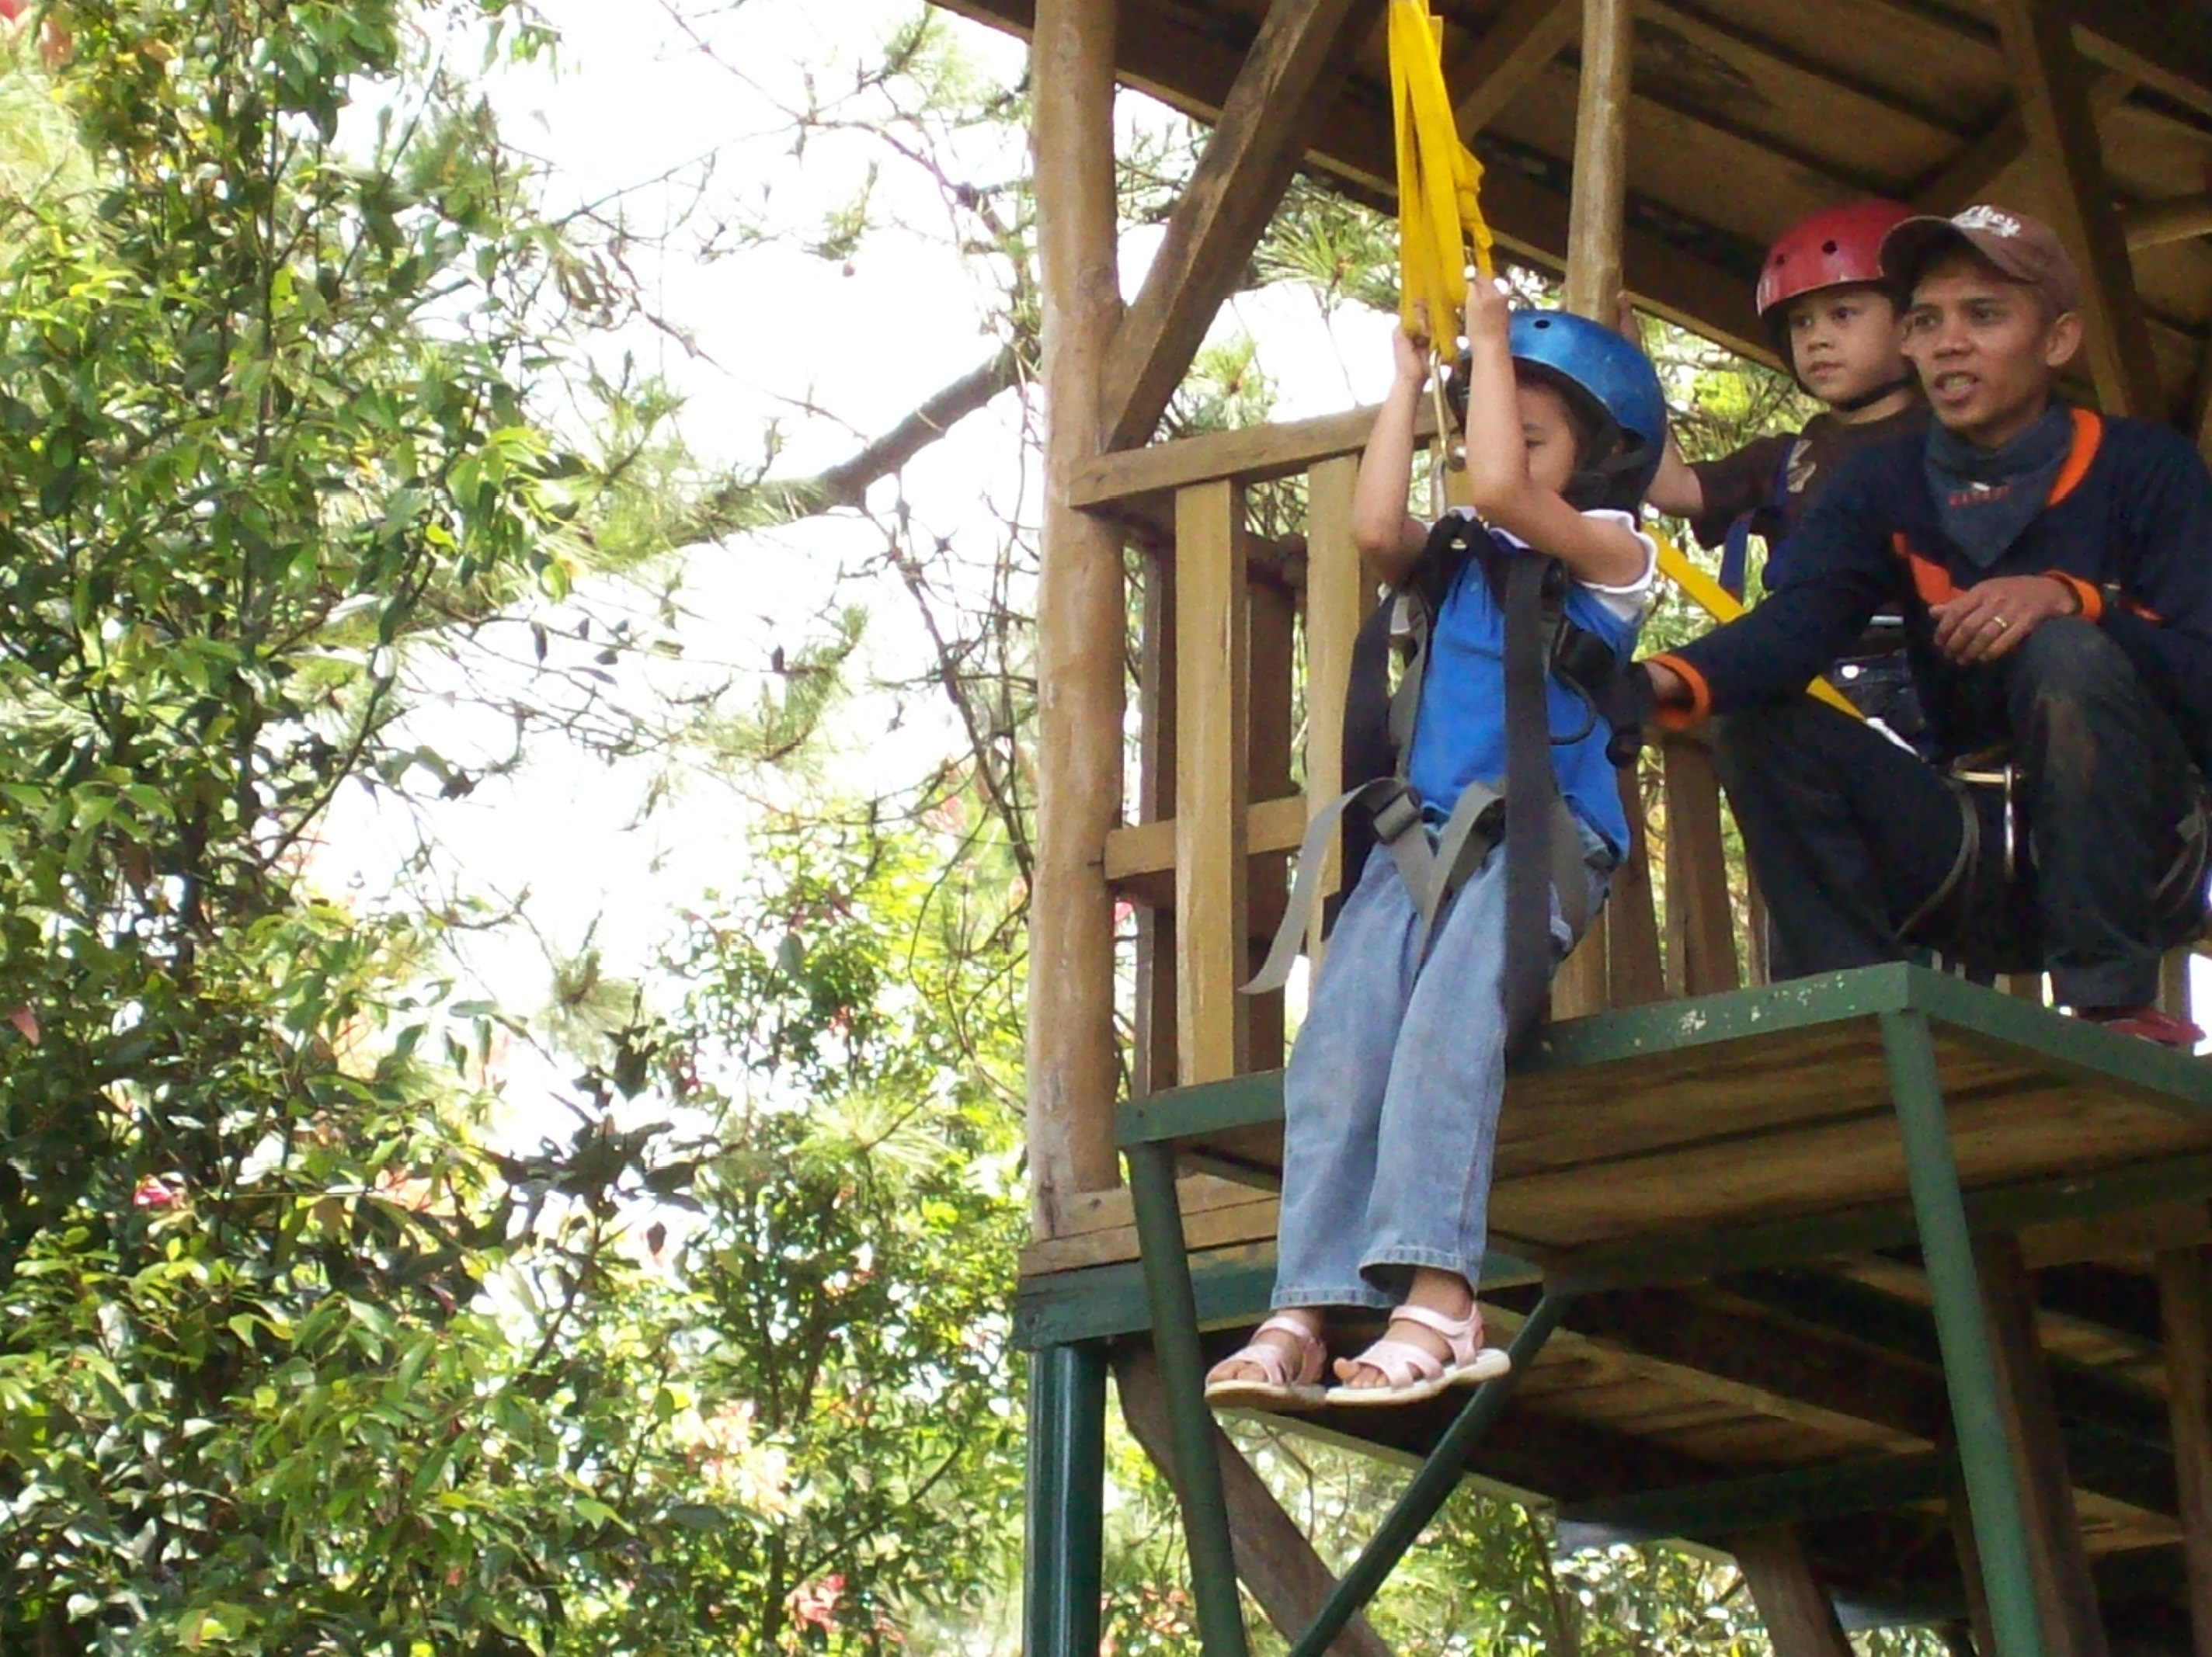 iflying-fox-anak